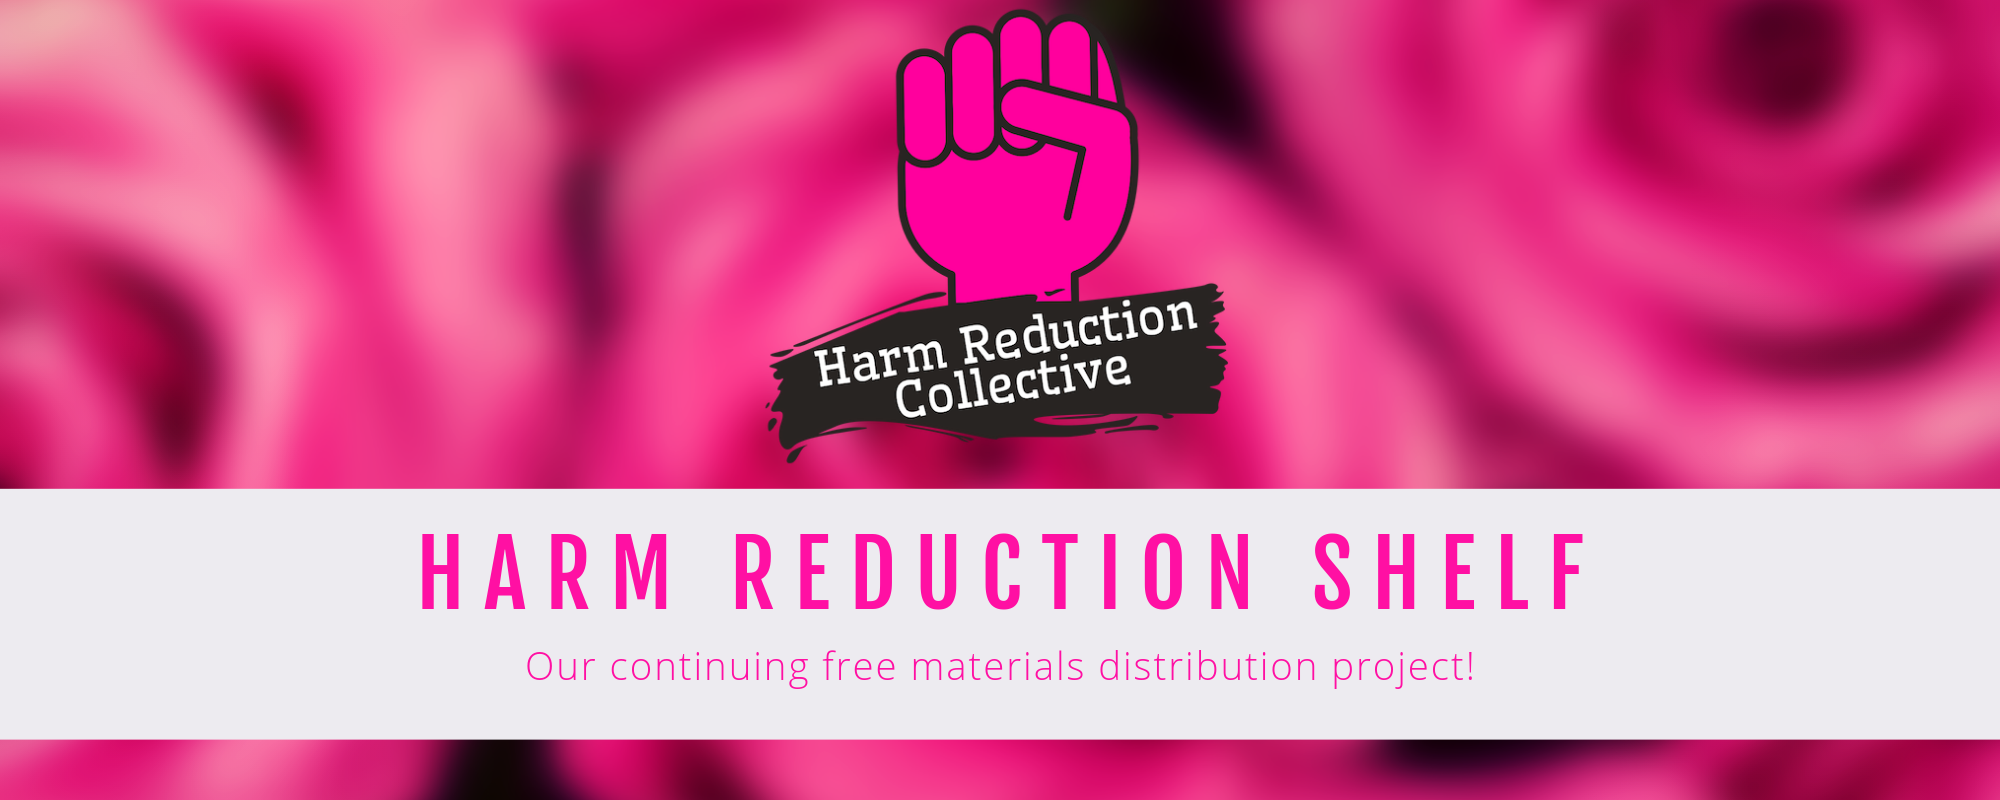 Harm Reduction Banner 1.png